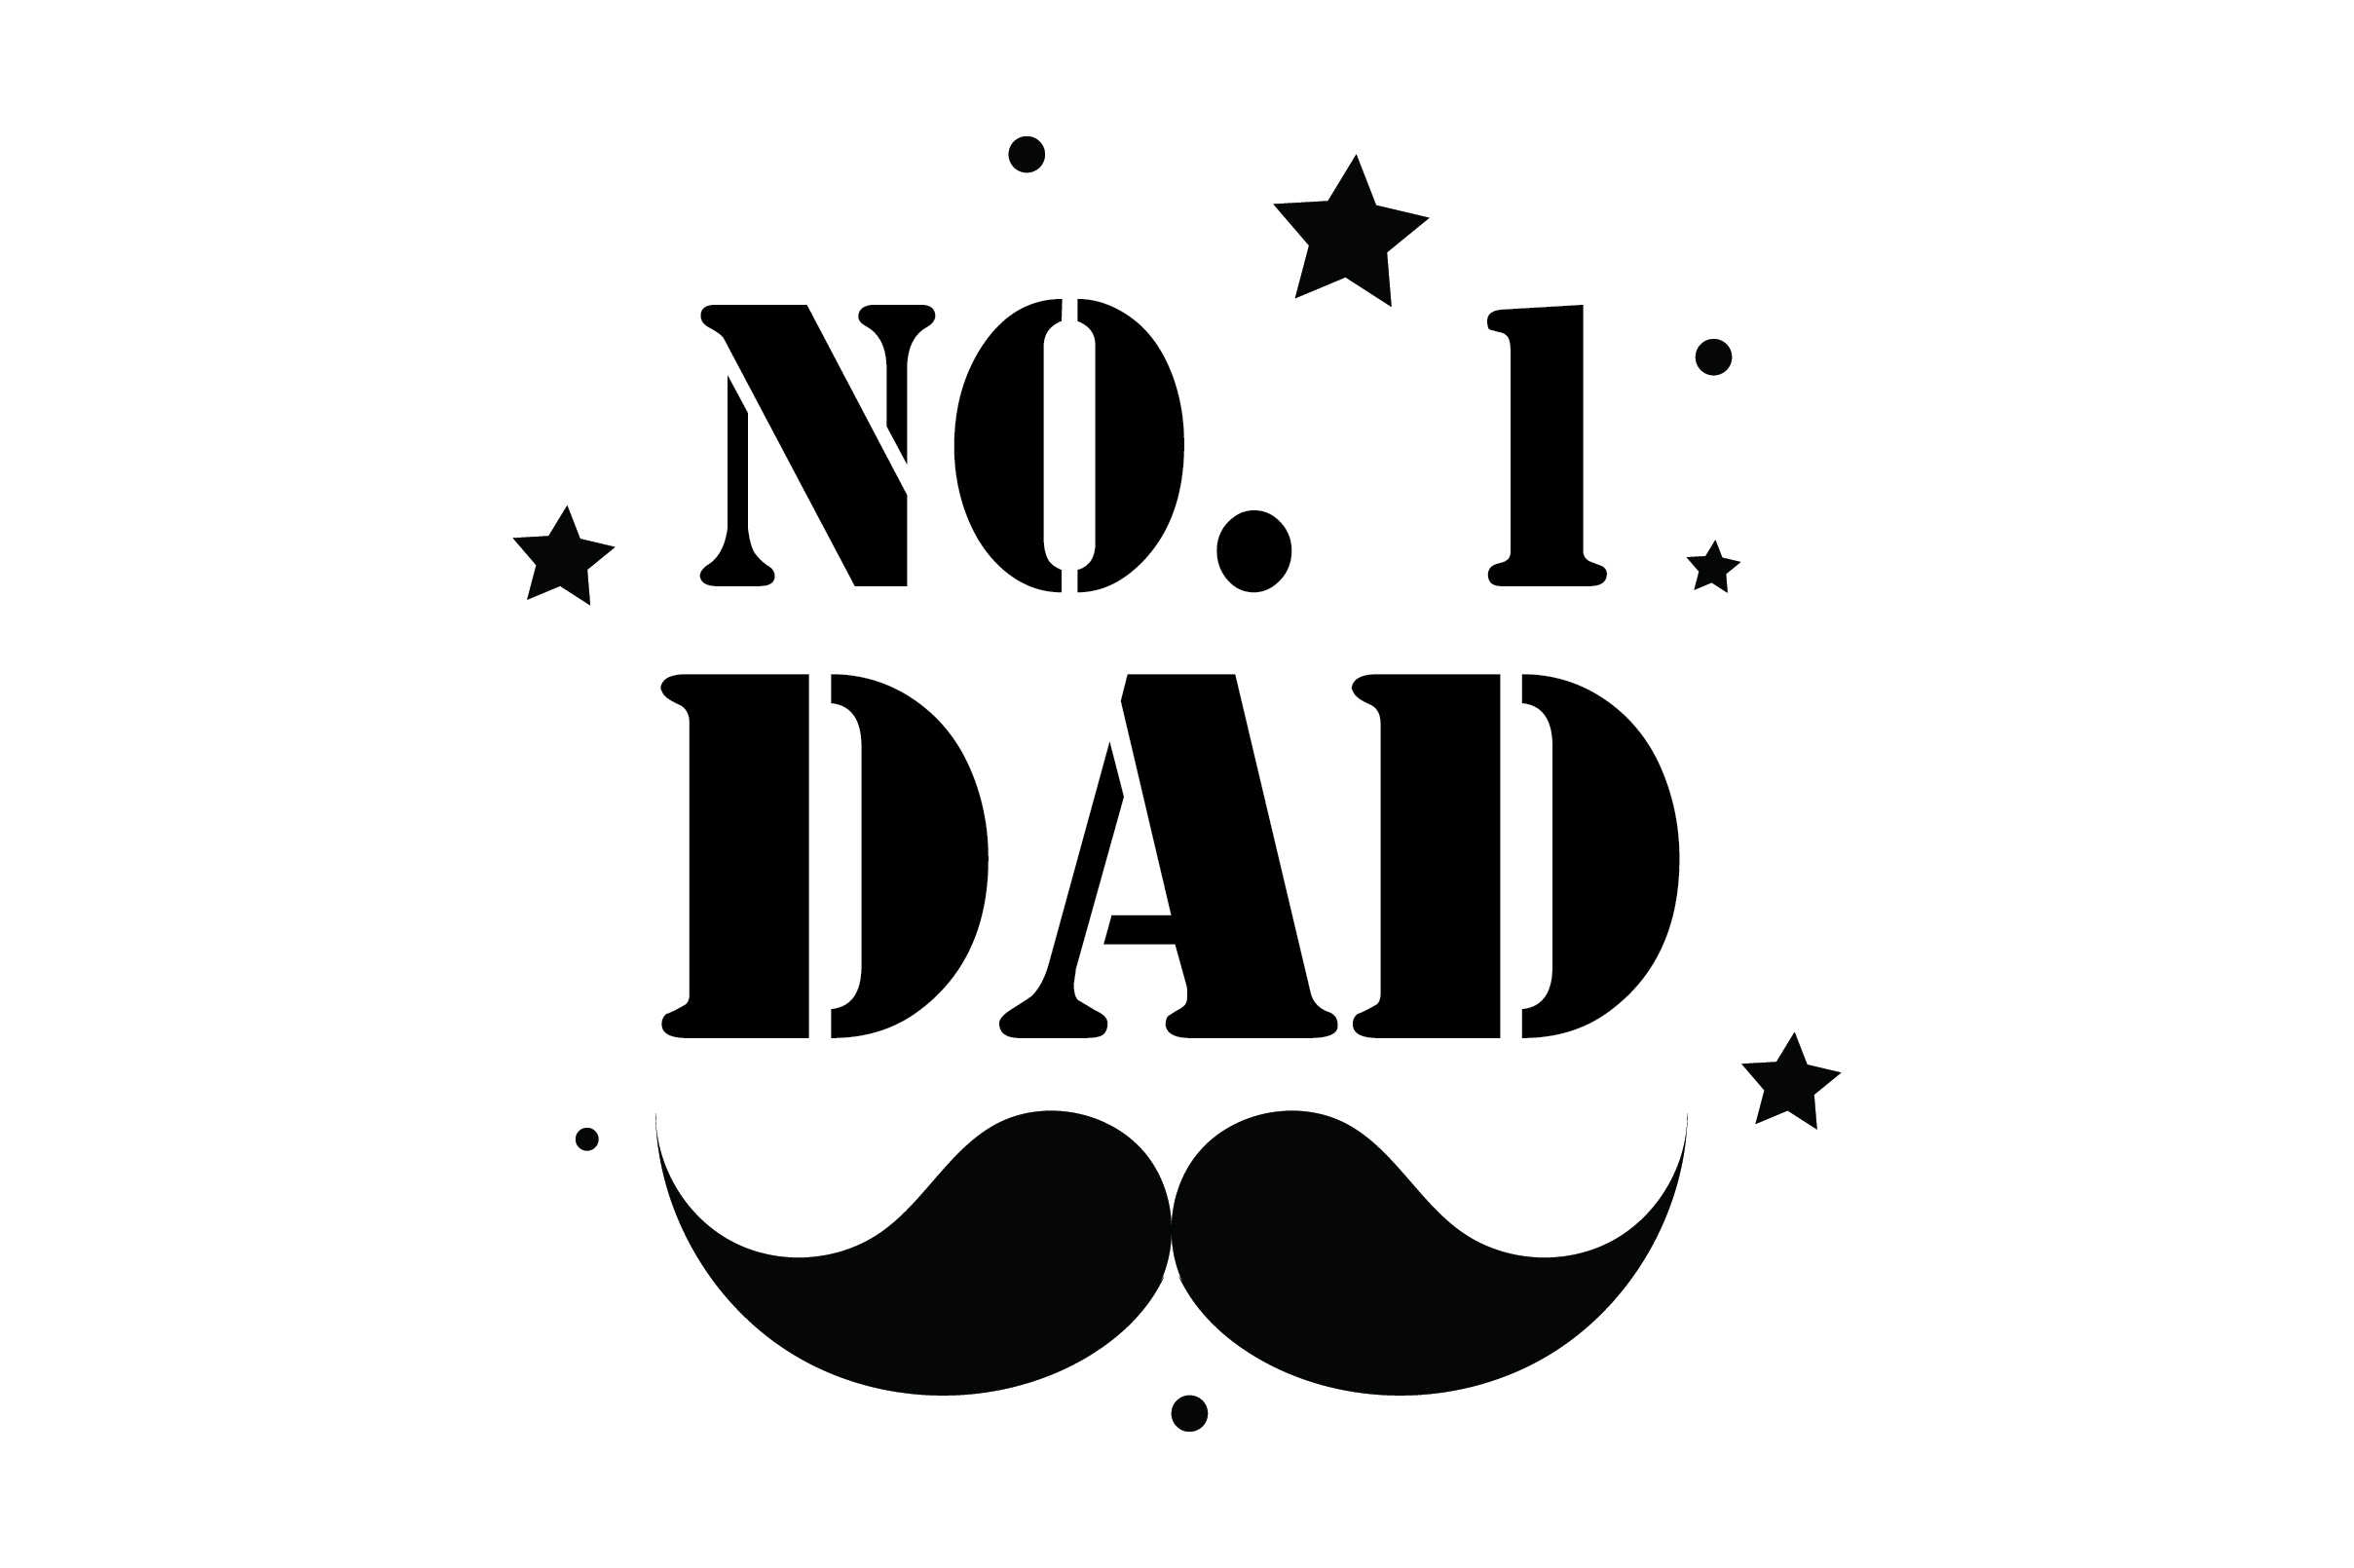 Download Free No 1 Dad Quote Graphic By Fauzidea Creative Fabrica for Cricut Explore, Silhouette and other cutting machines.